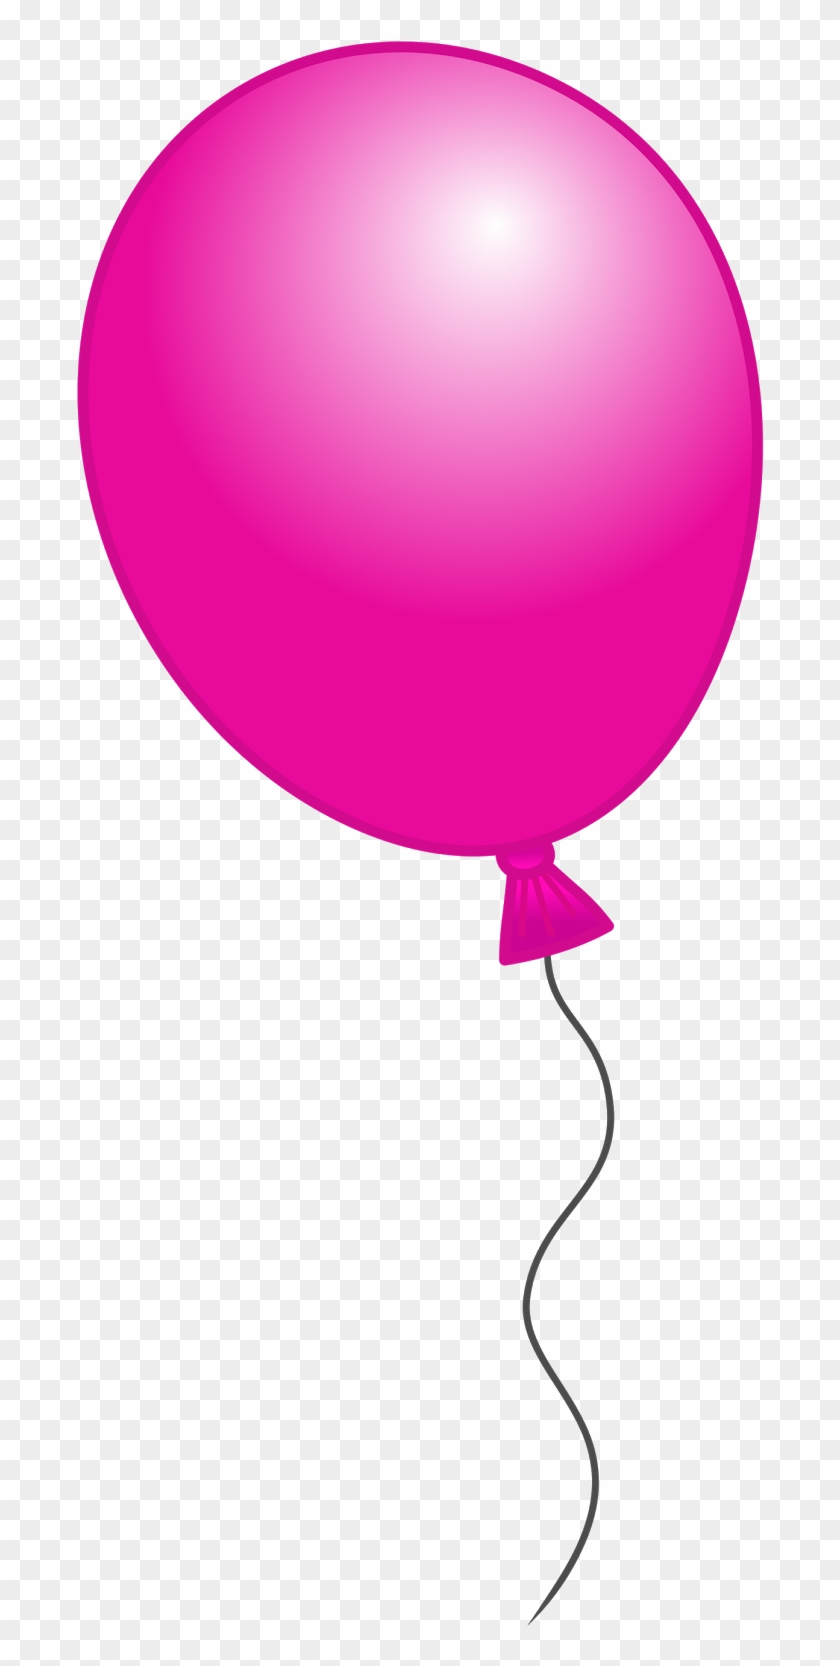 Fuschia Balloon Cliparts Free Download Clip Art Free - Balloon #9108